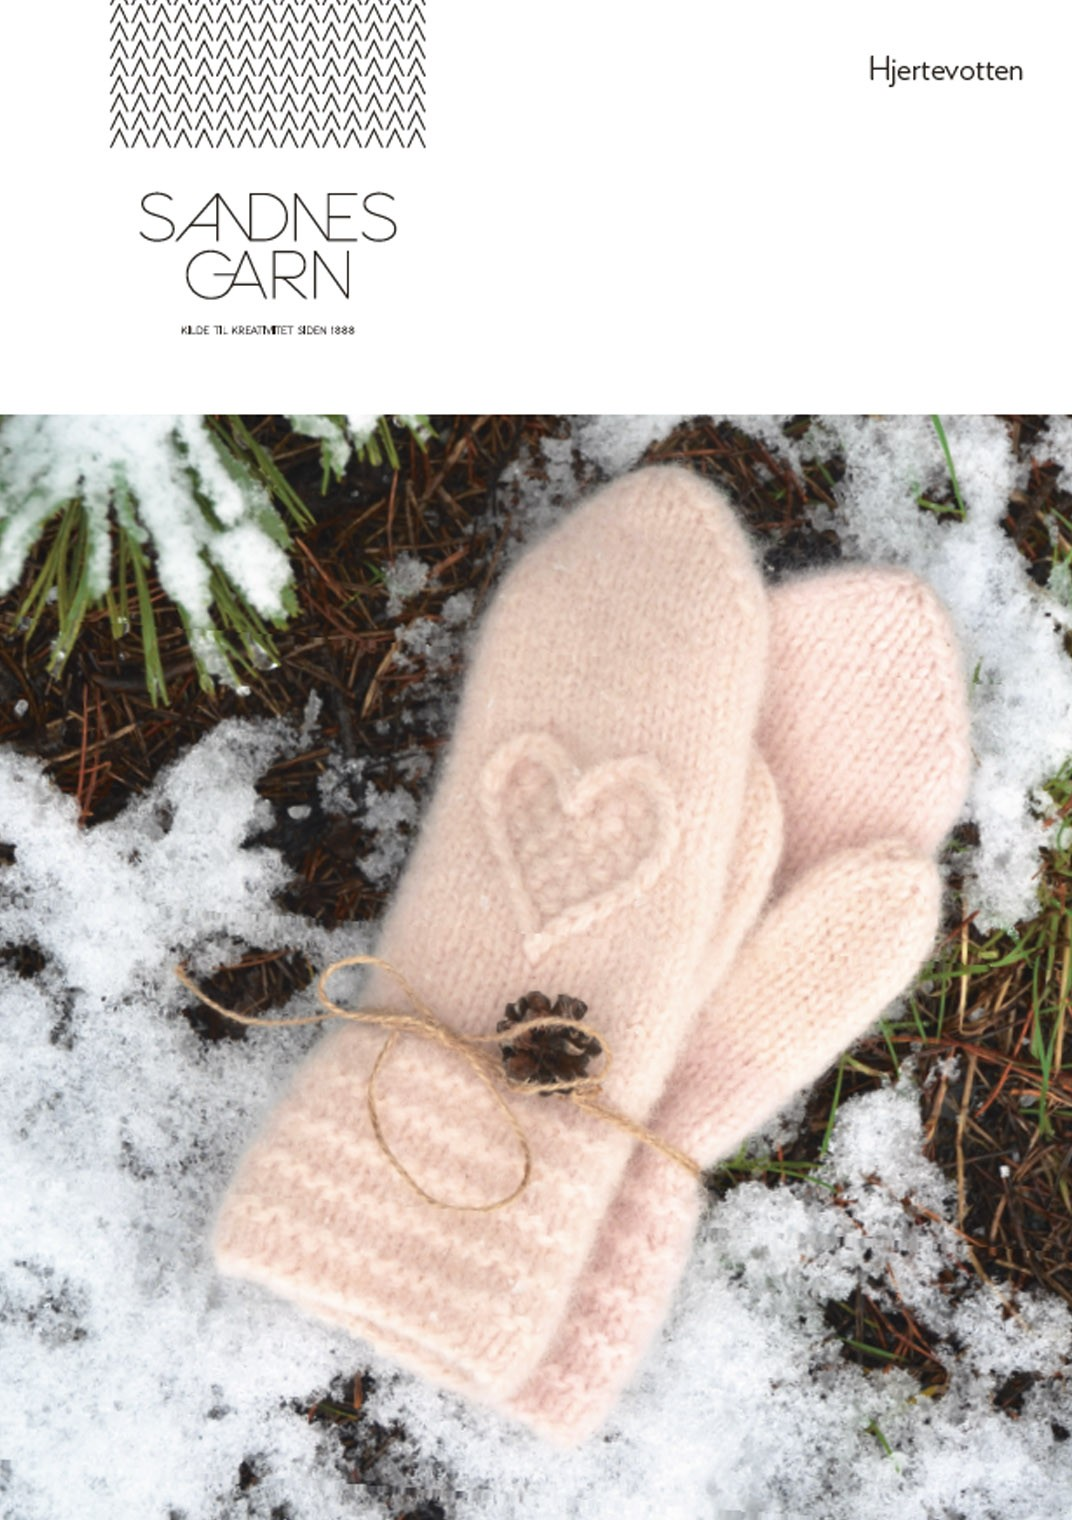 Heart Mittens - Finnish pattern and yarns